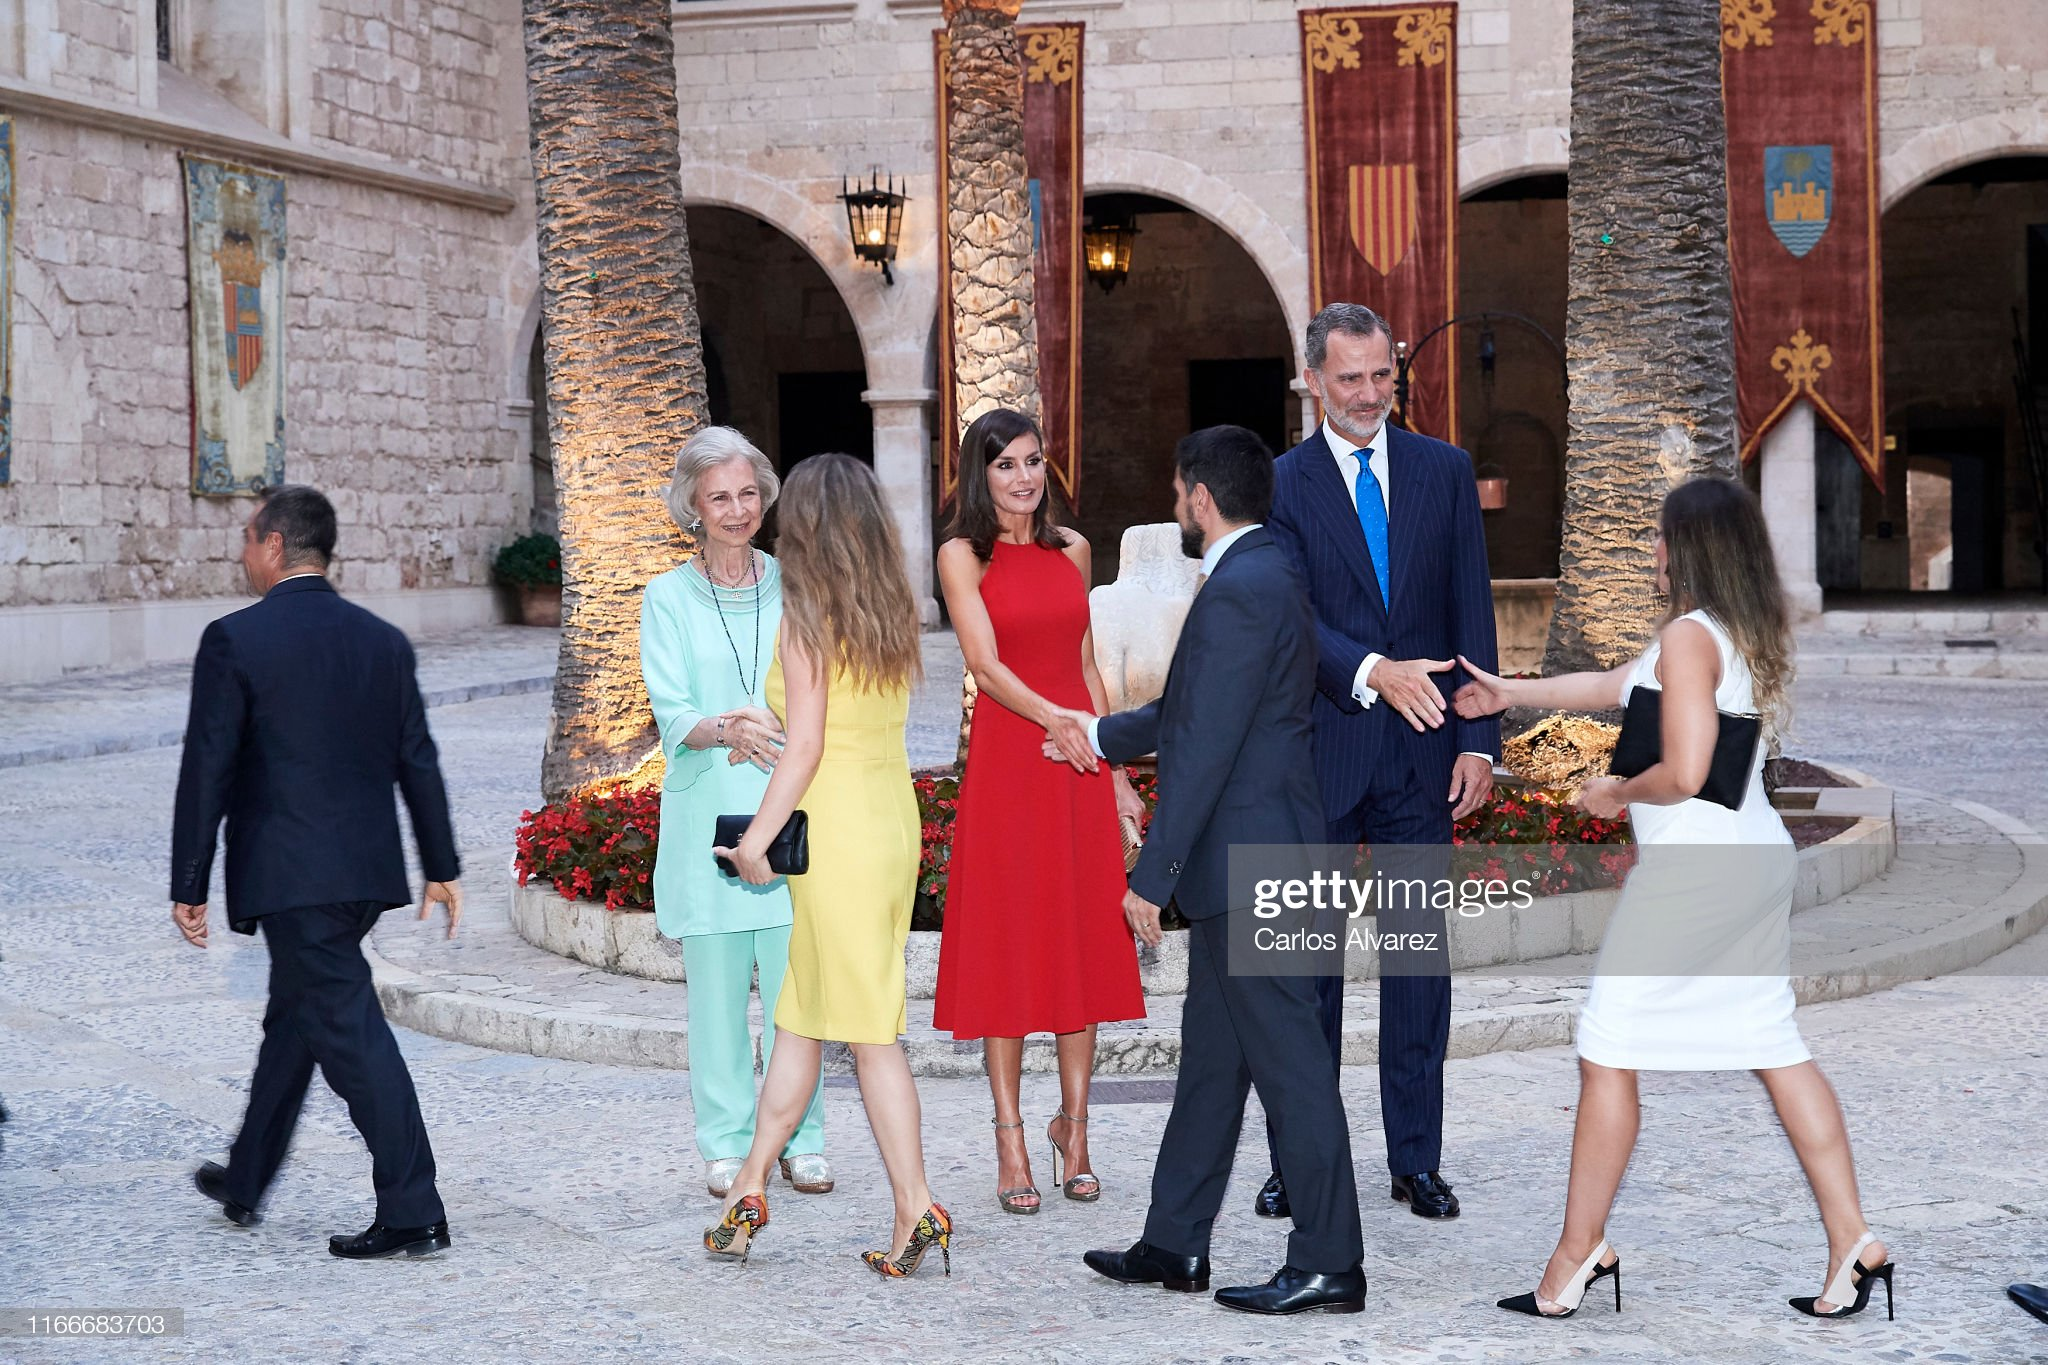 https://media.gettyimages.com/photos/king-felipe-vi-of-spain-queen-letizia-of-spain-and-queen-sofia-host-a-picture-id1166683703?s=2048x2048